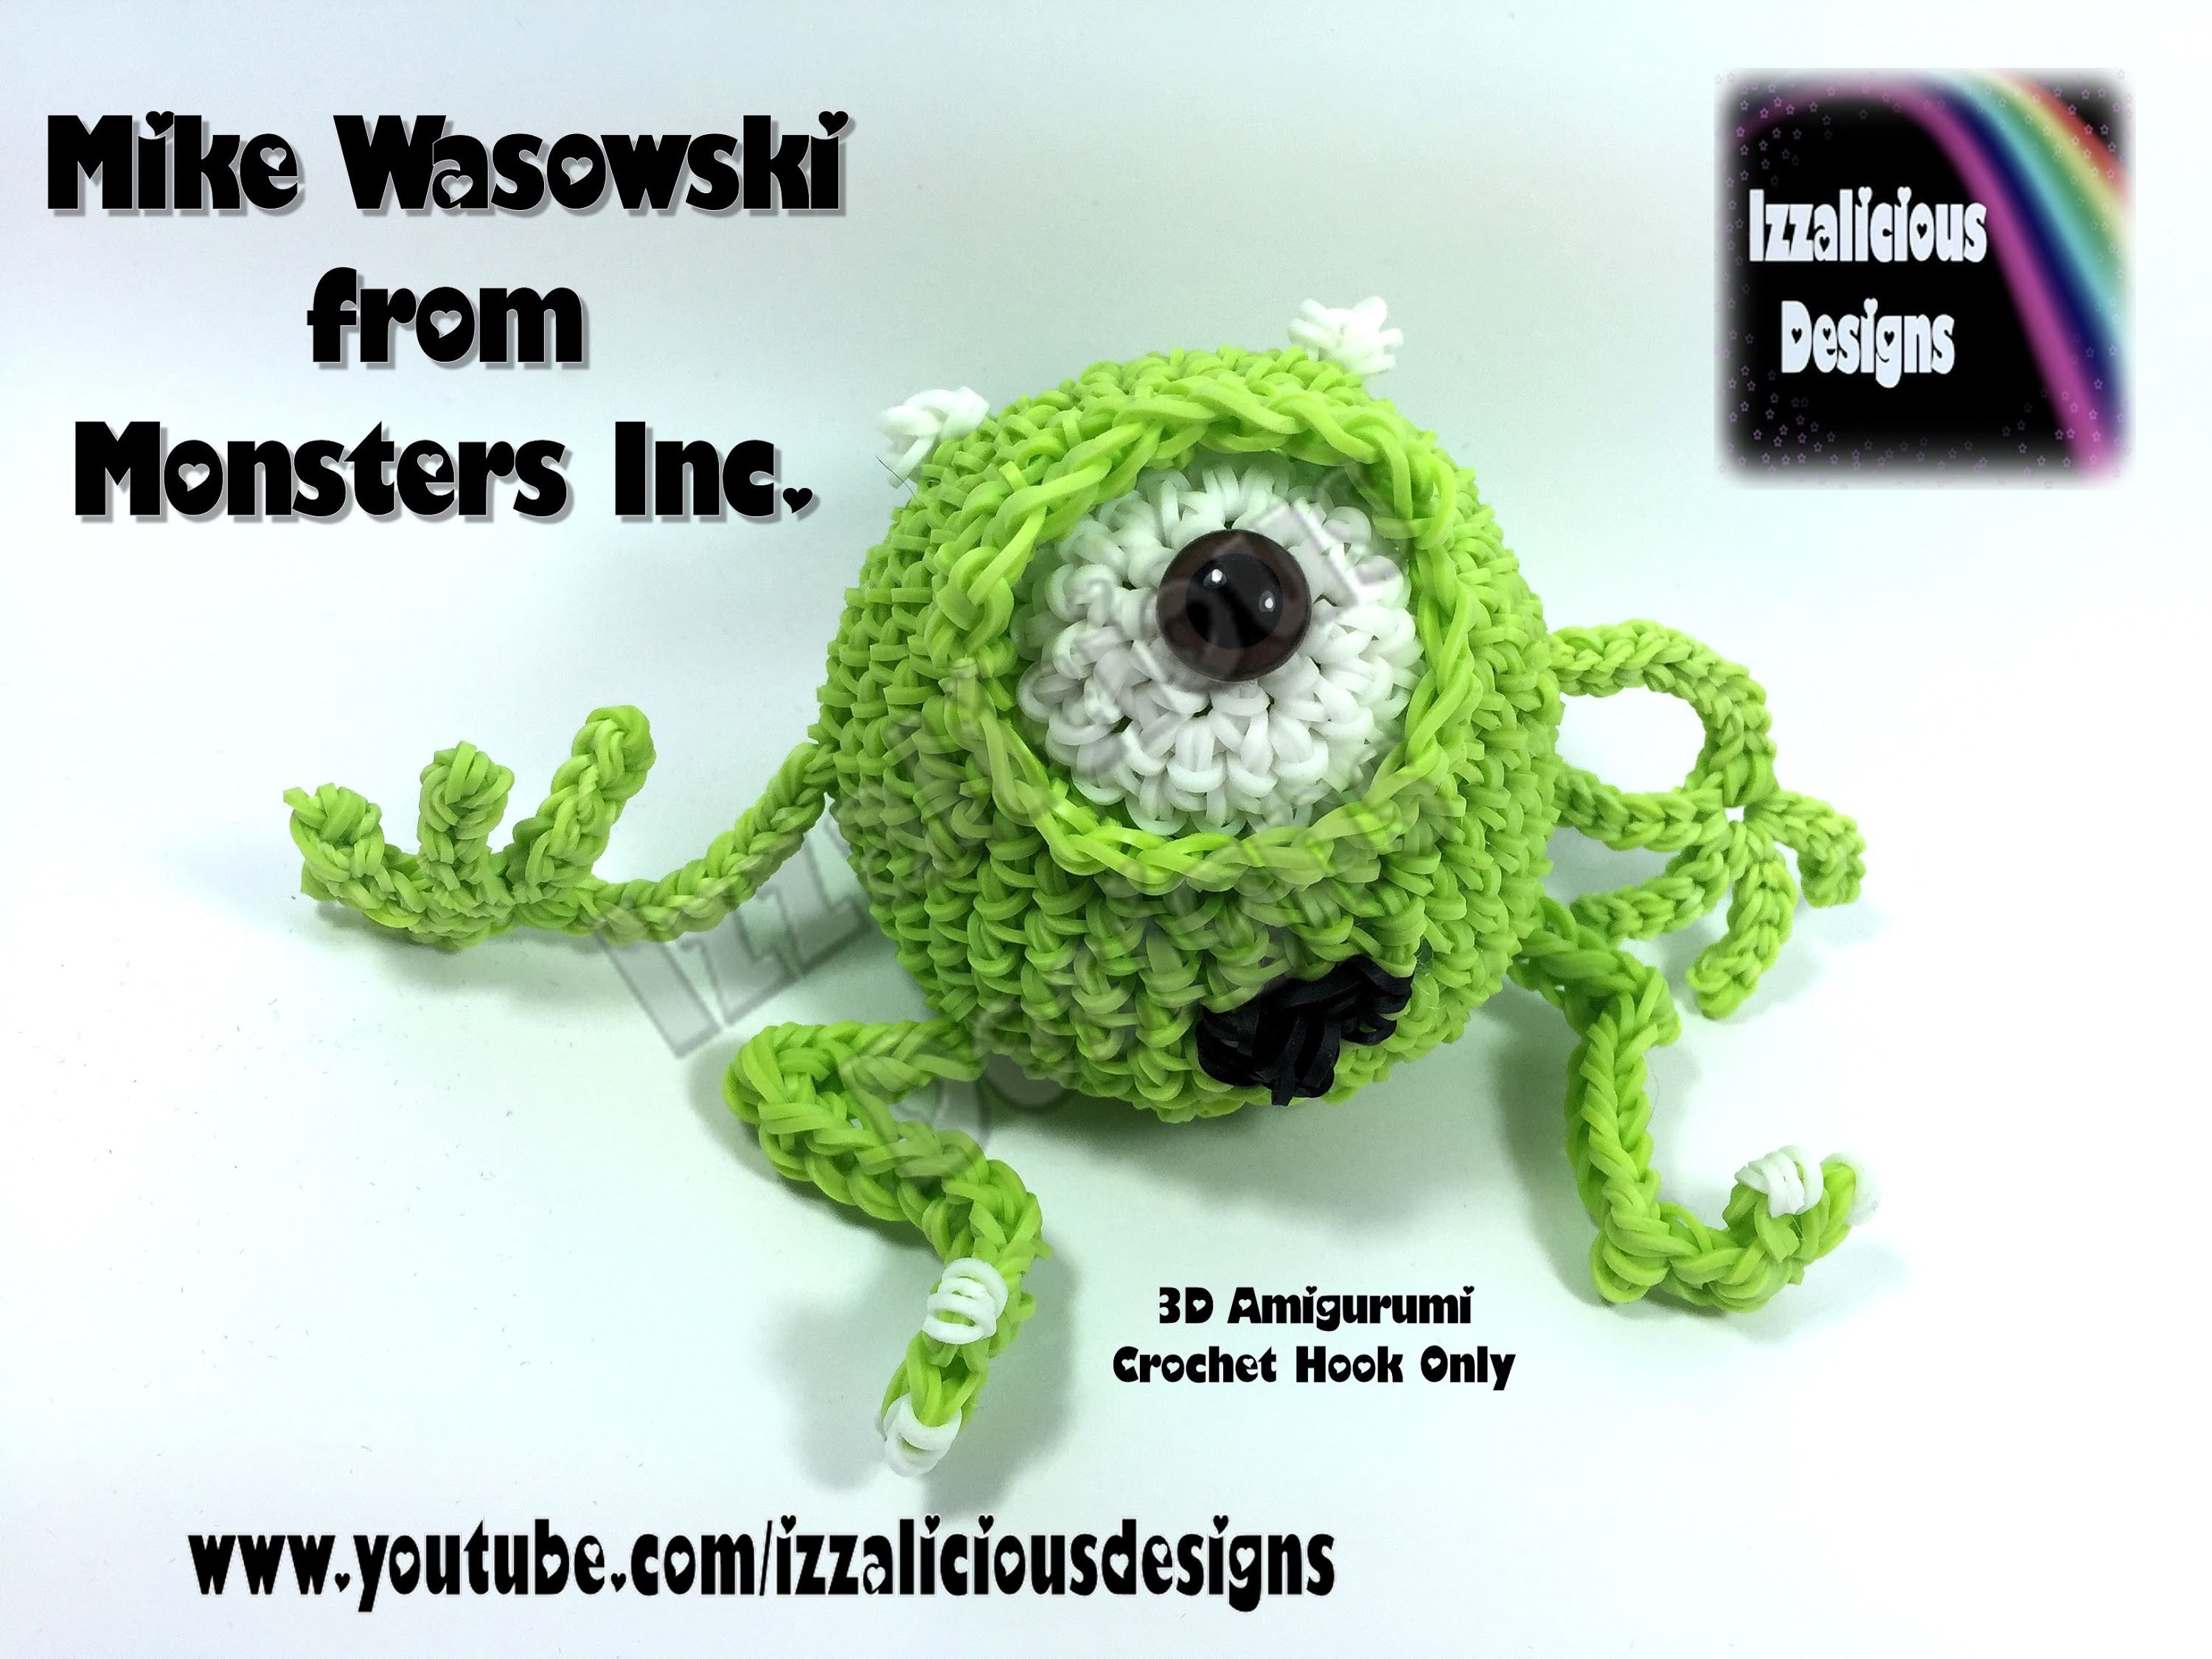 Rainbow Loom 3D Mike Wasowski (Monsters Inc) Figure.Doll Amigurumi.Loomigurumi ` Hook Only.Loom-less